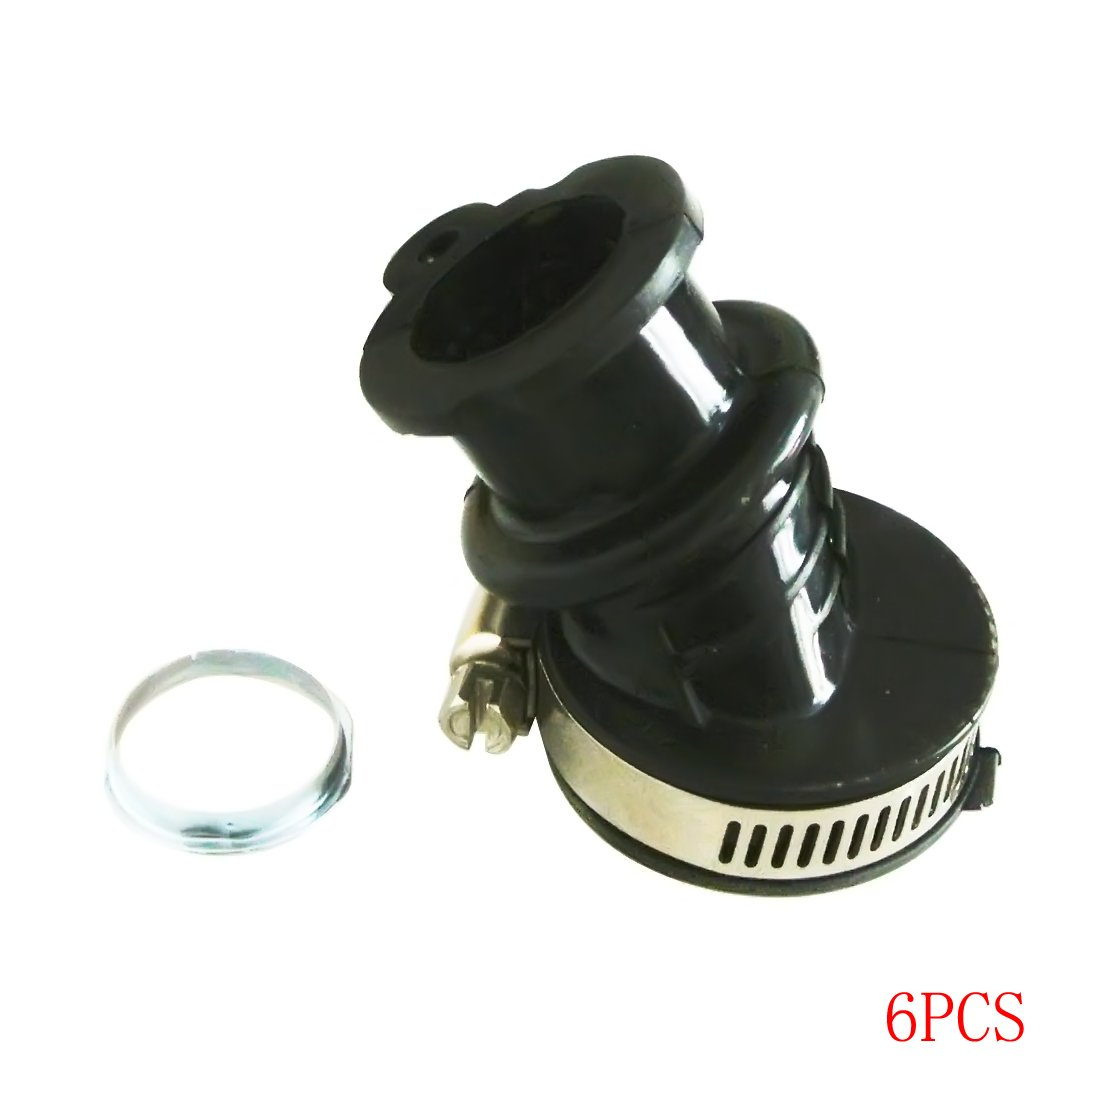 Amazon.com: sthus Manifold Air Intake & Hose Clip and Sleeve for STIHL 038  MS380 MS381 Chainsaw: Garden & Outdoor